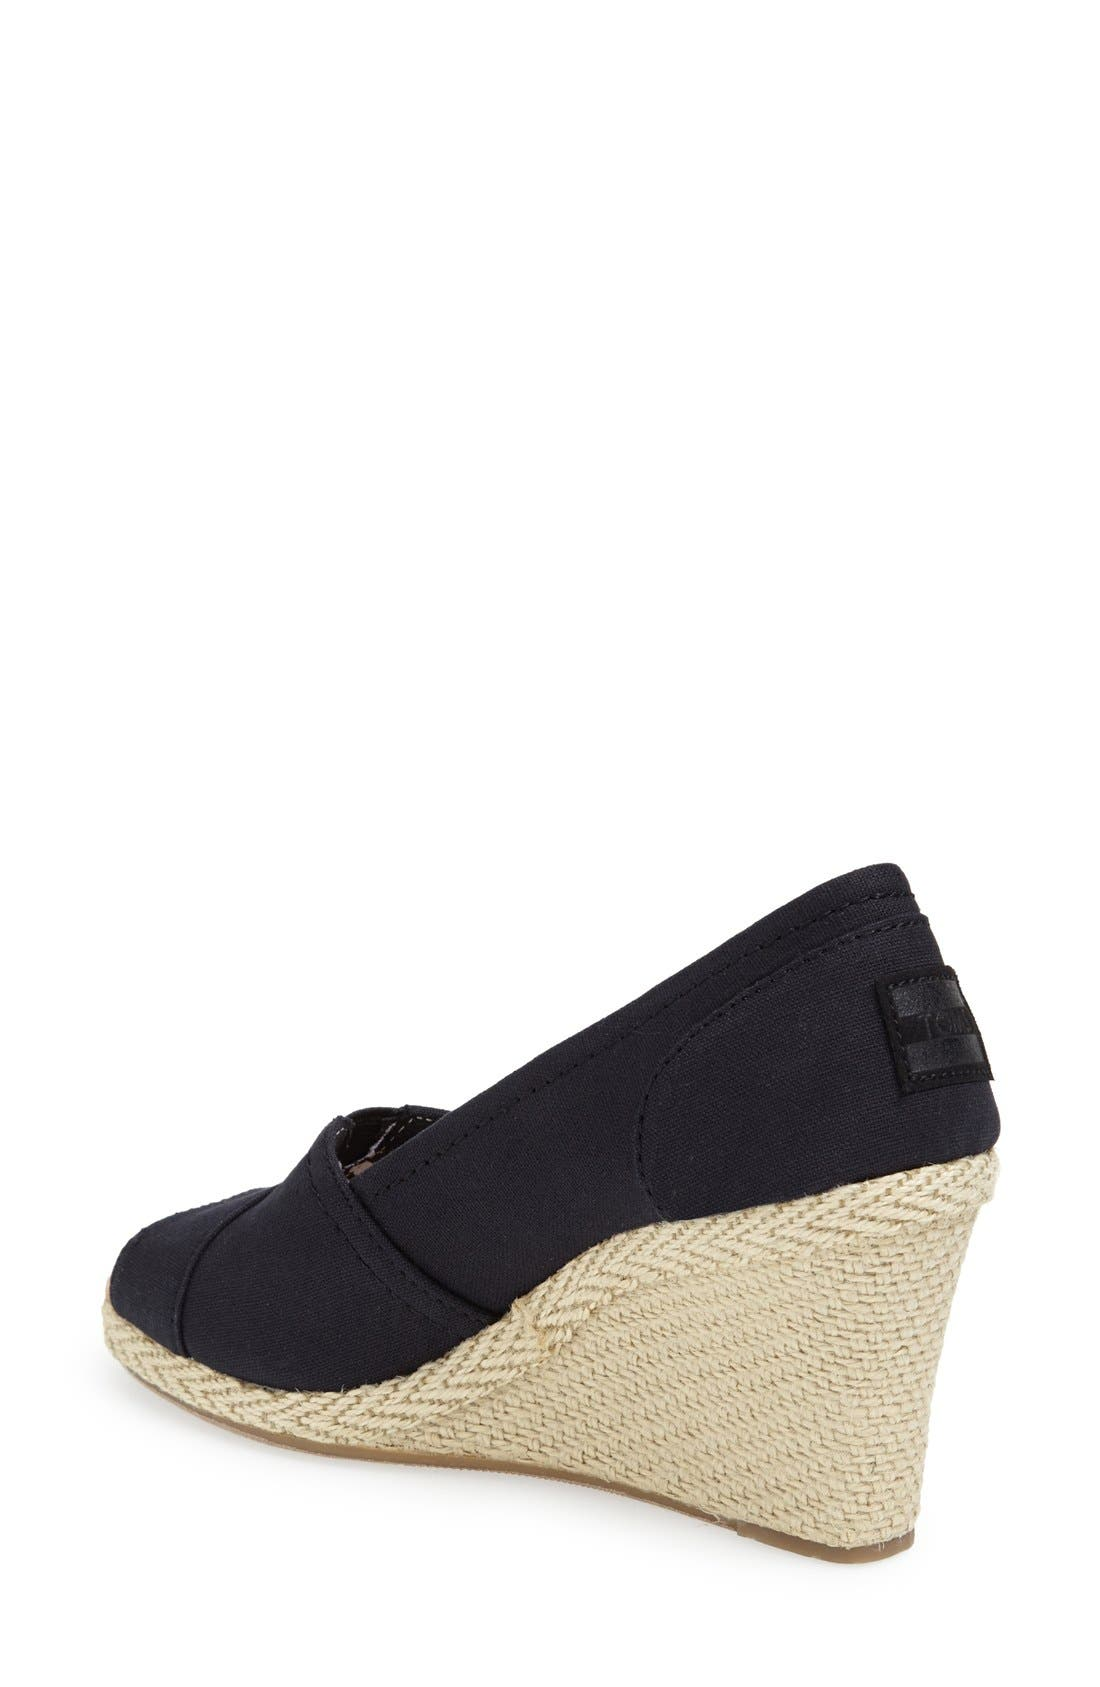 'Calypso' Canvas Wedge,                             Alternate thumbnail 2, color,                             001